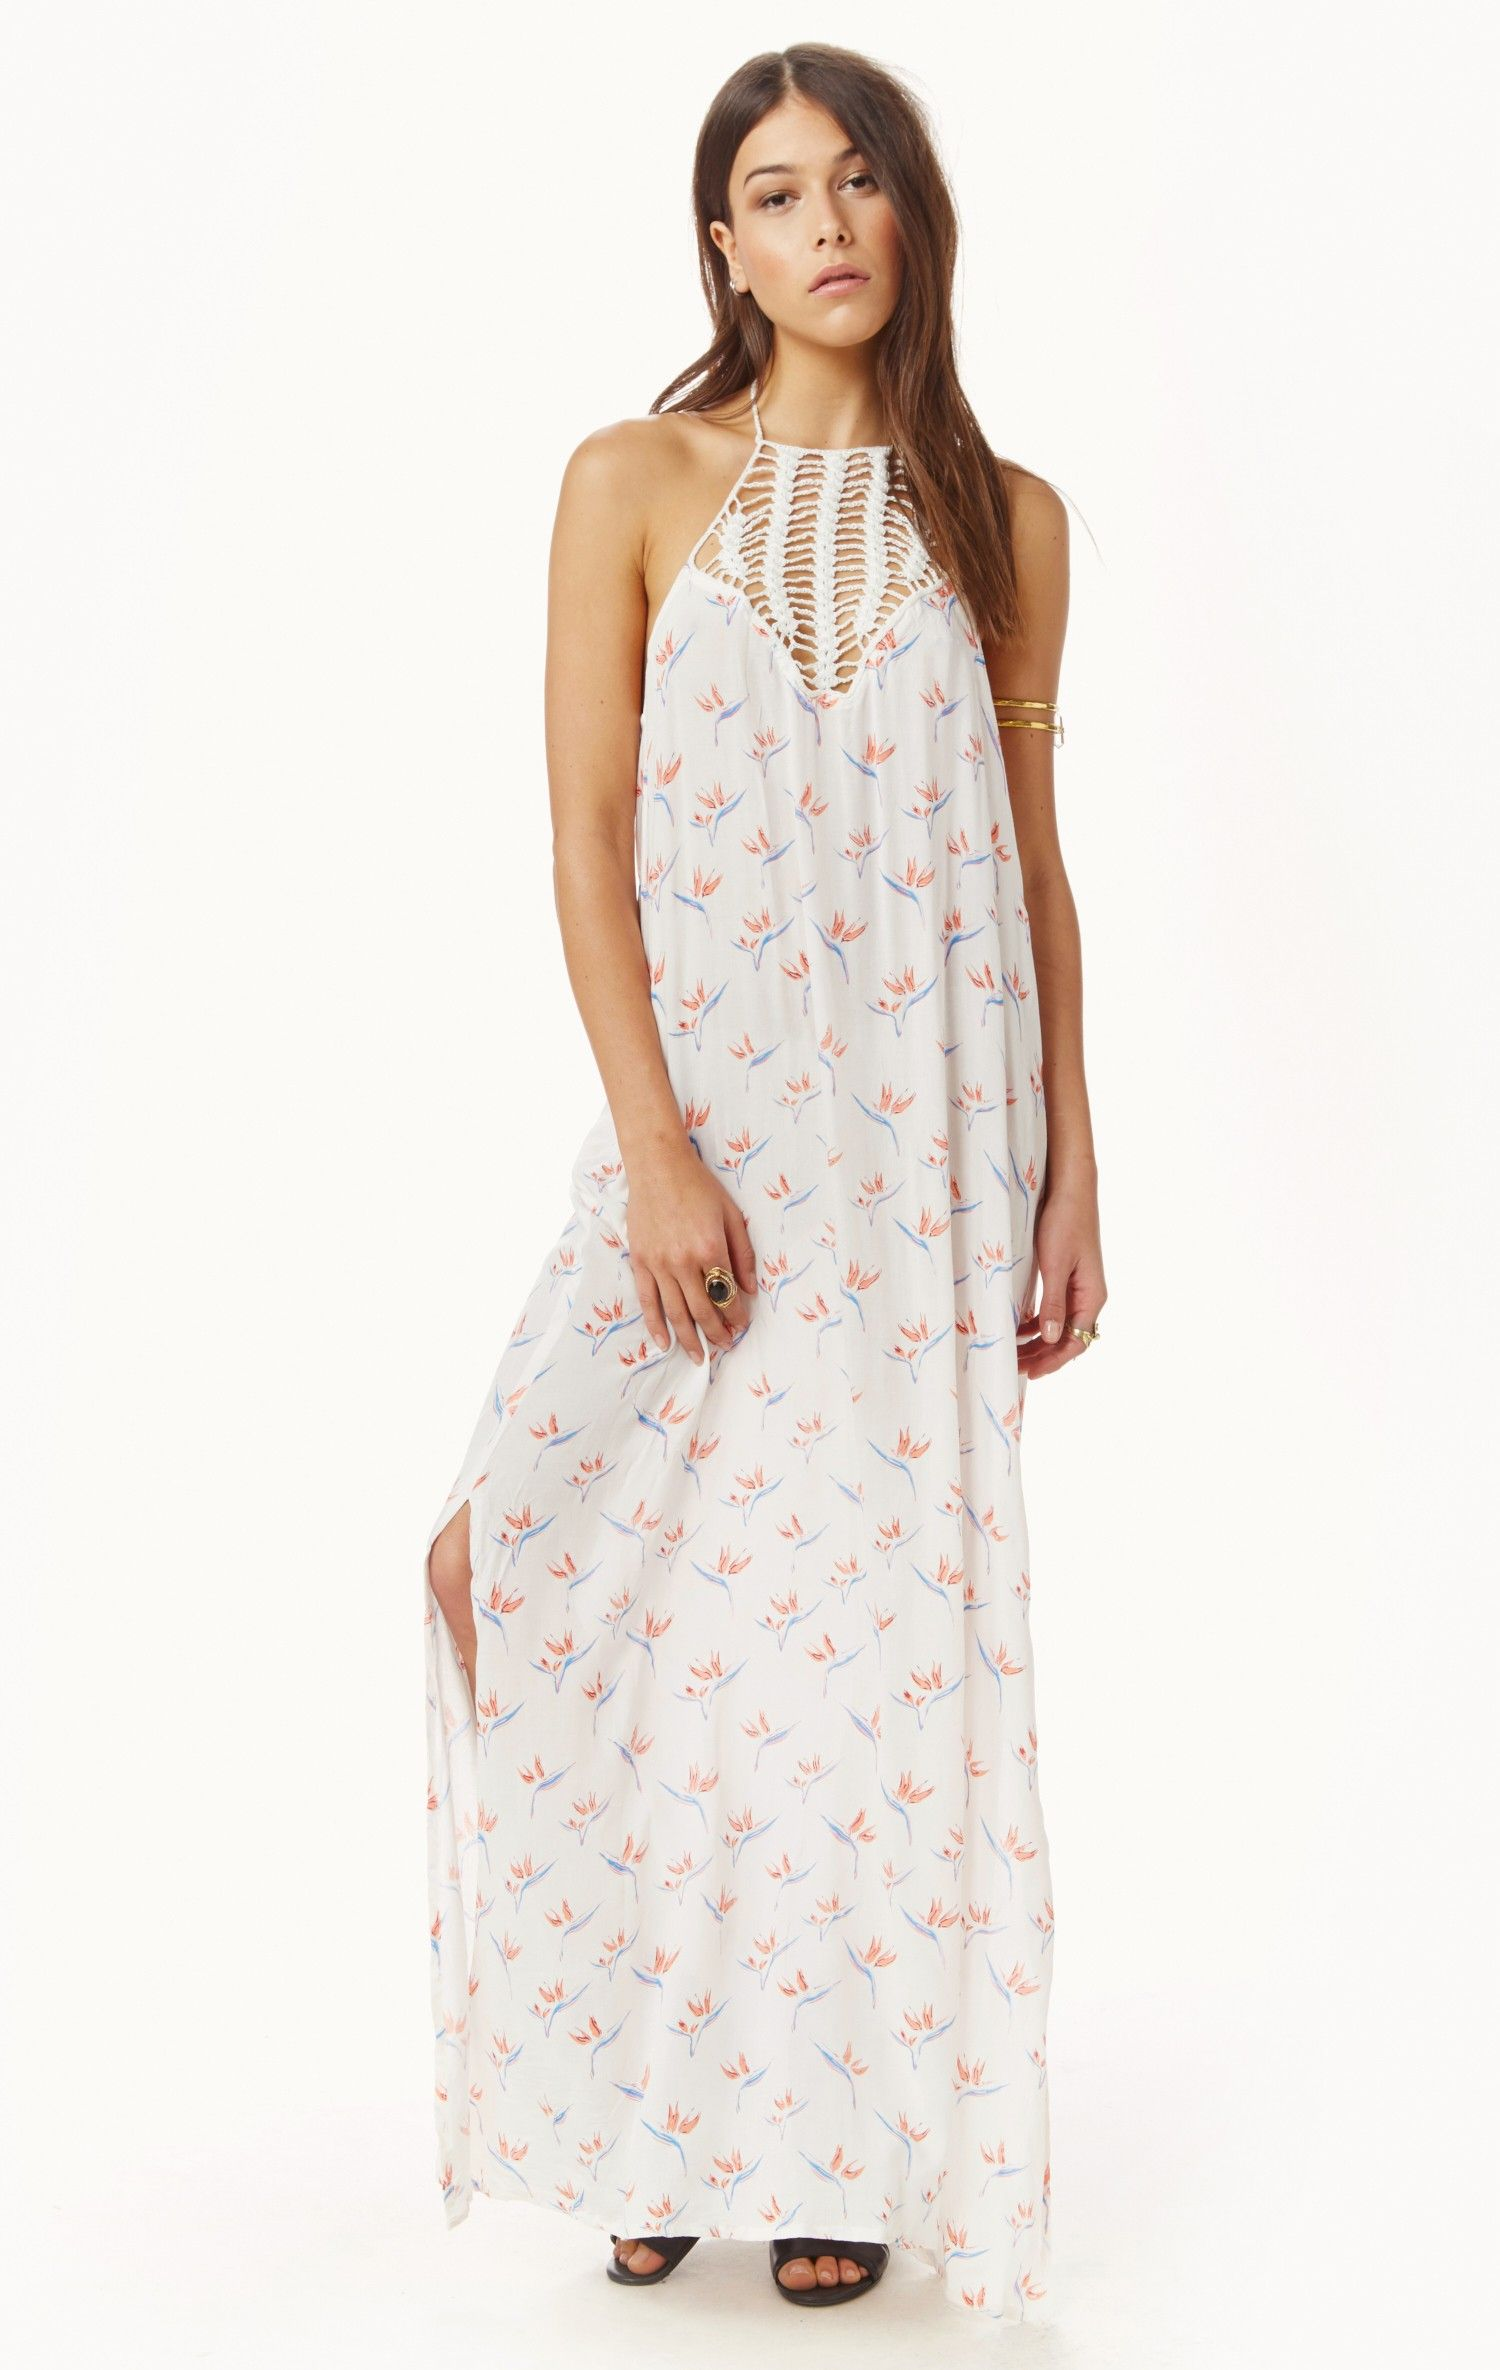 9f7e35a5ca89 Moscow long dress in 2019 | NEW ARRIVALS | Dresses, Beachy maxi ...